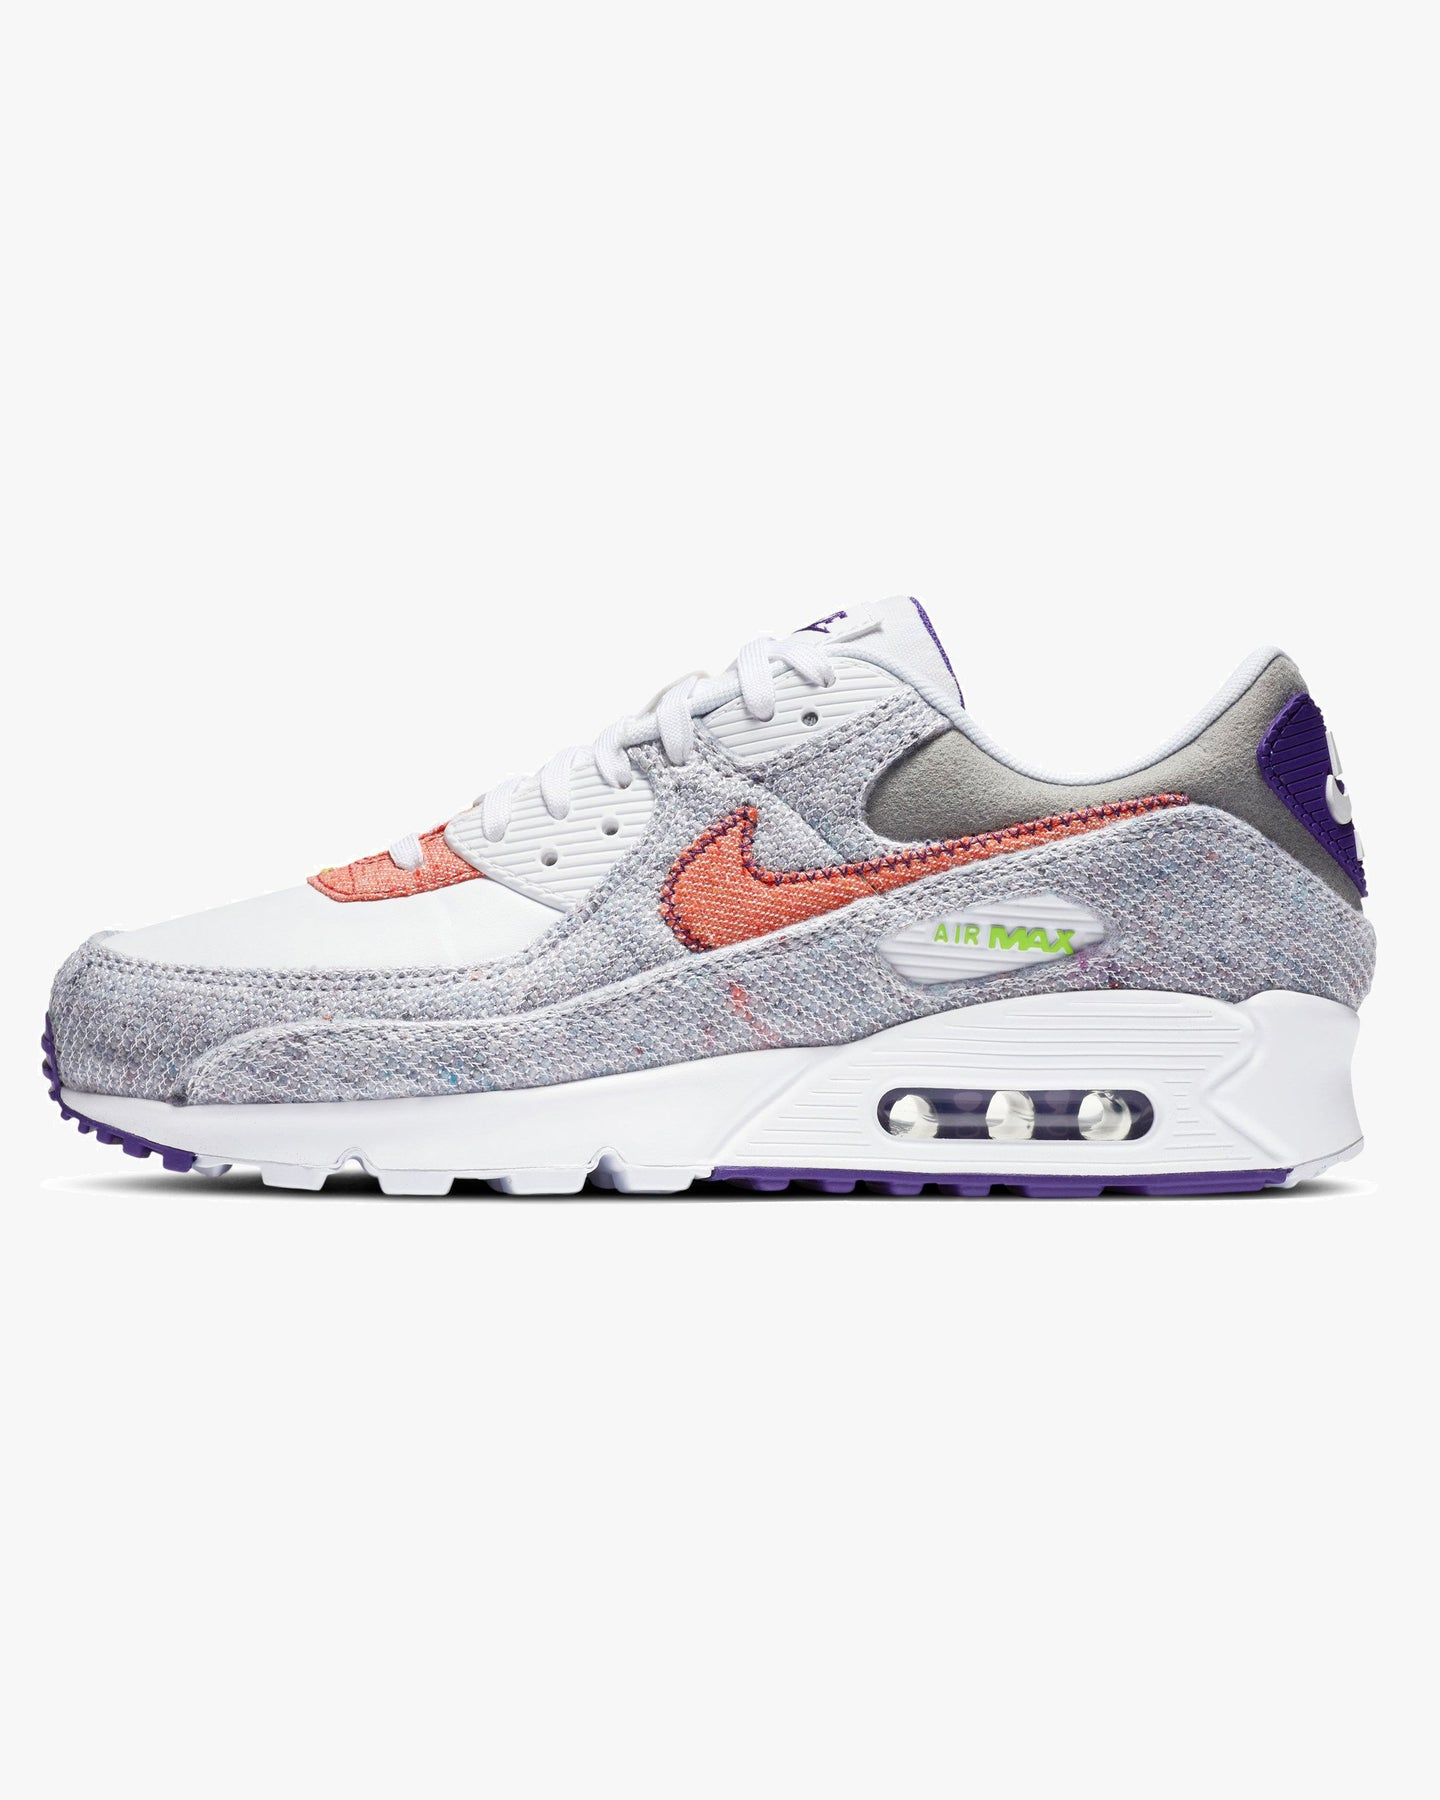 Nike Air Max 90 NRG 'Recycled Canvas' - White / Electric Green / Court Purple UK 6 CT16841006 Nike Trainers